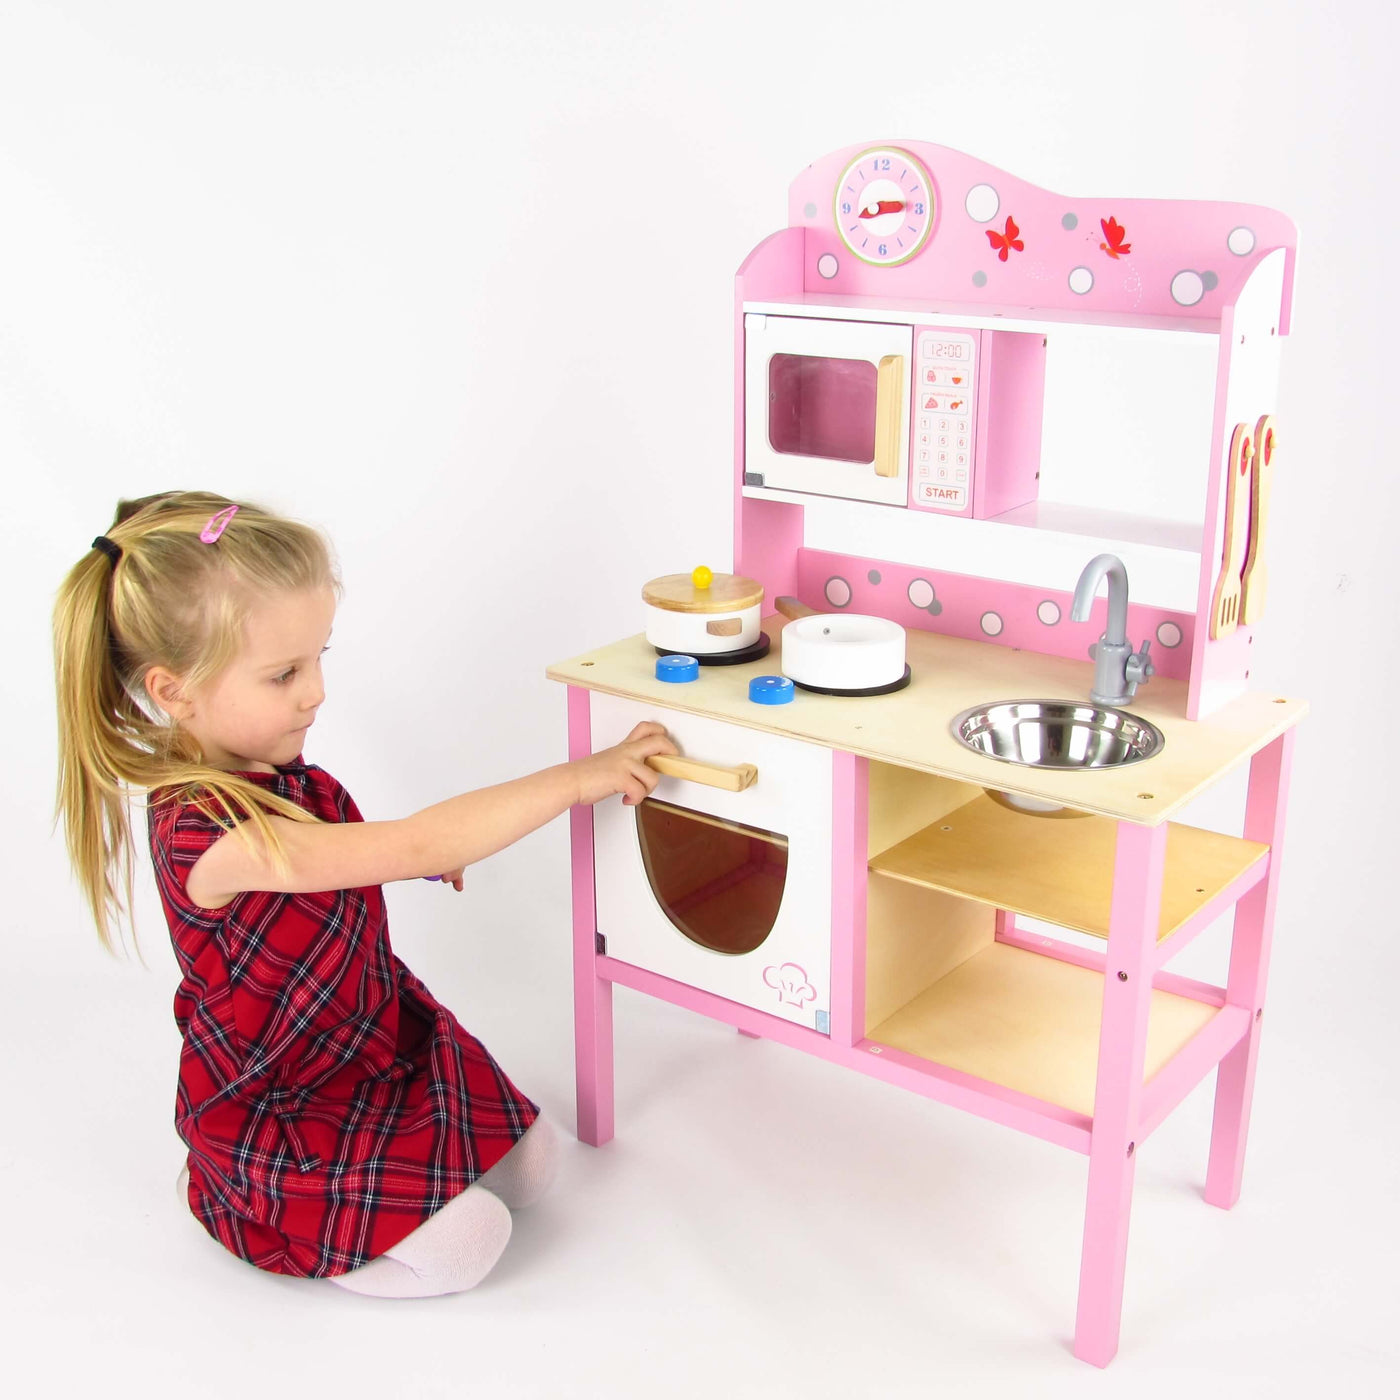 Butternut Pink Wooden Kids Play Kitchen Set With Accessories – Toyz ...